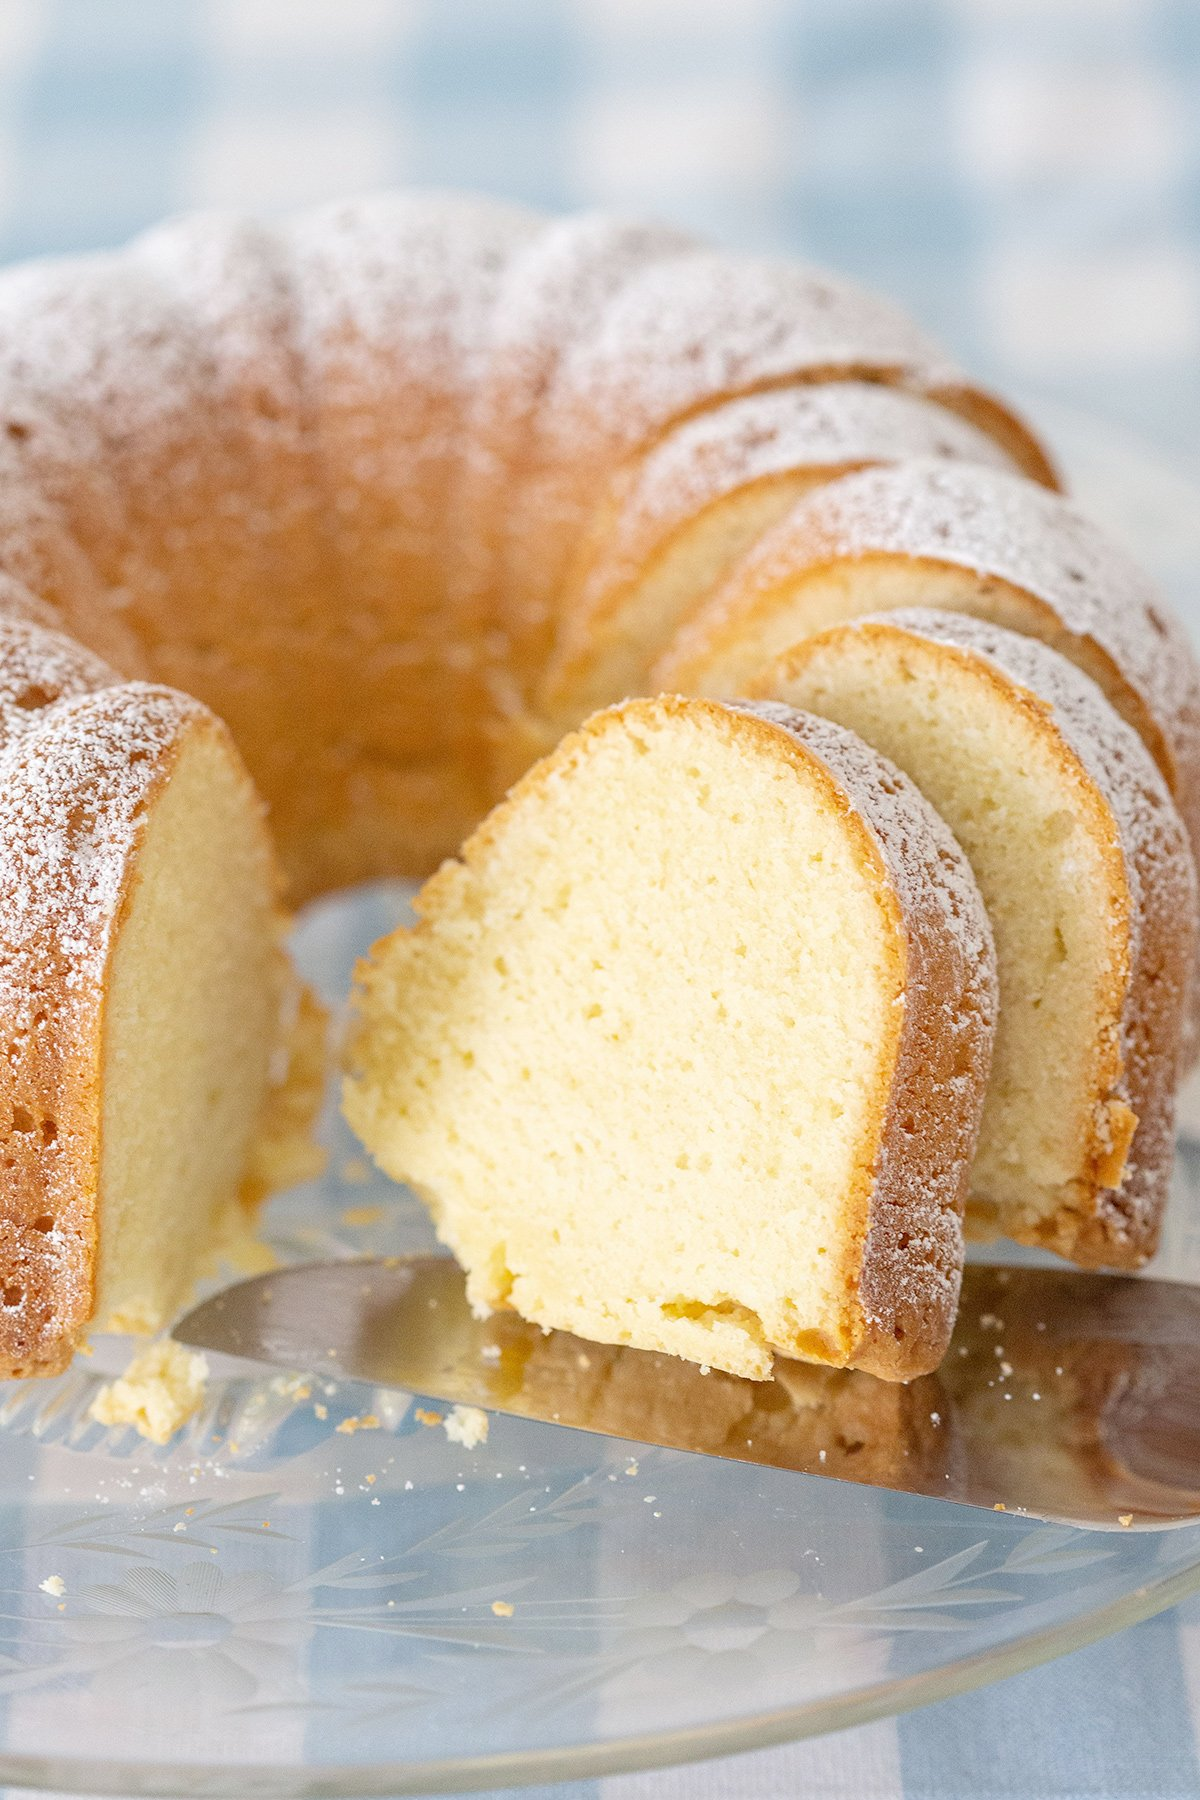 Southern Pound Cake with Cream Cheese